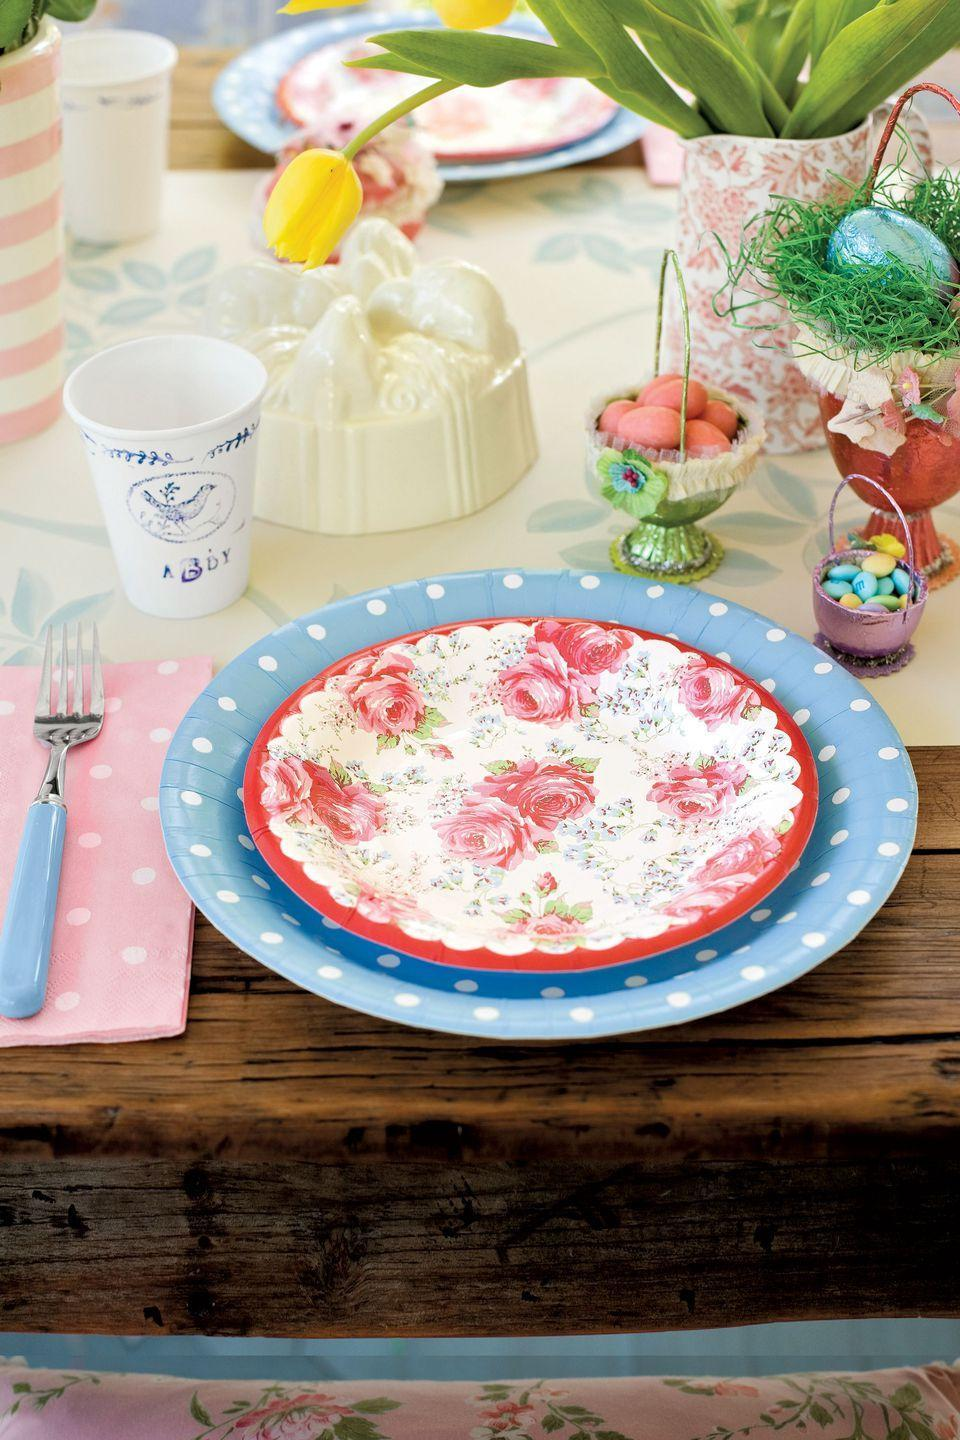 """<p>Glam up the kids' table with a plate combo so pretty you'll hardly believe they're paper.</p><p><a rel=""""nofollow noopener"""" href=""""https://www.amazon.com/Disposable-Dinnerware-Set-Supplies-Birthdays/dp/B077G39MTK/"""" target=""""_blank"""" data-ylk=""""slk:SHOP PAPER PLATES"""" class=""""link rapid-noclick-resp"""">SHOP PAPER PLATES</a></p>"""